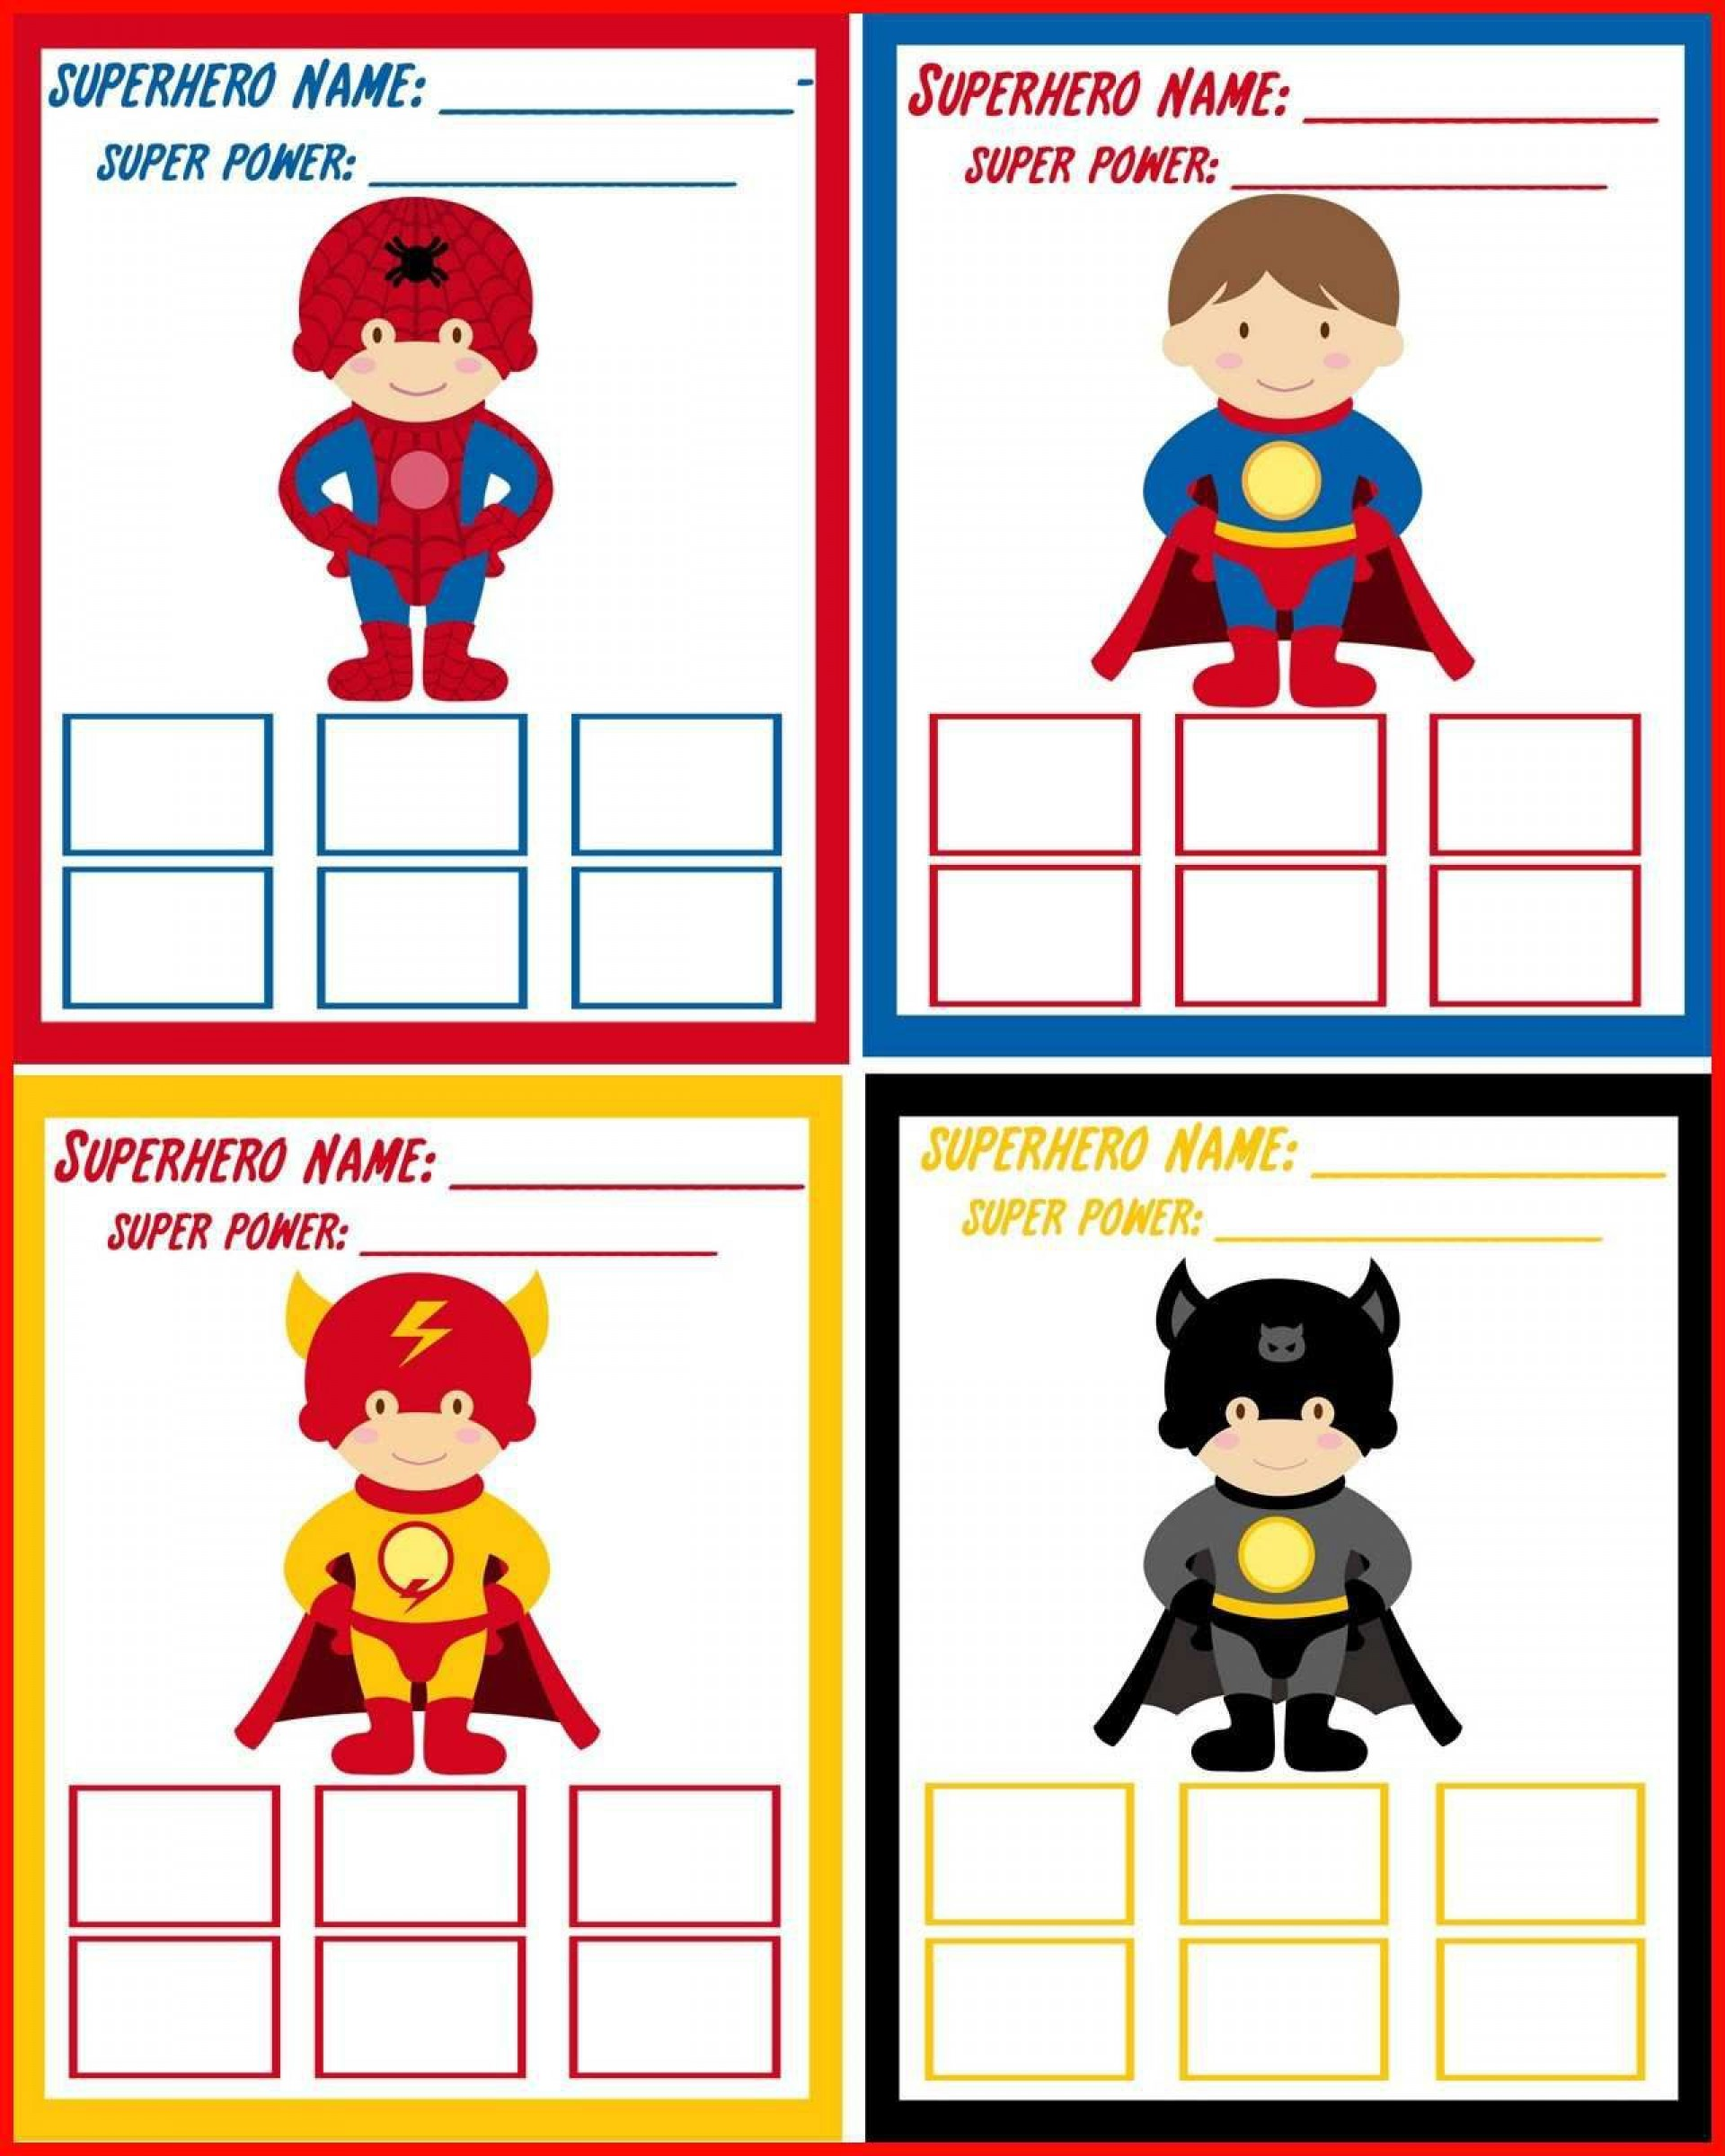 000 Phenomenal Superhero Invitation Template Free High Def  Baby Shower Newspaper Birthday Party1920